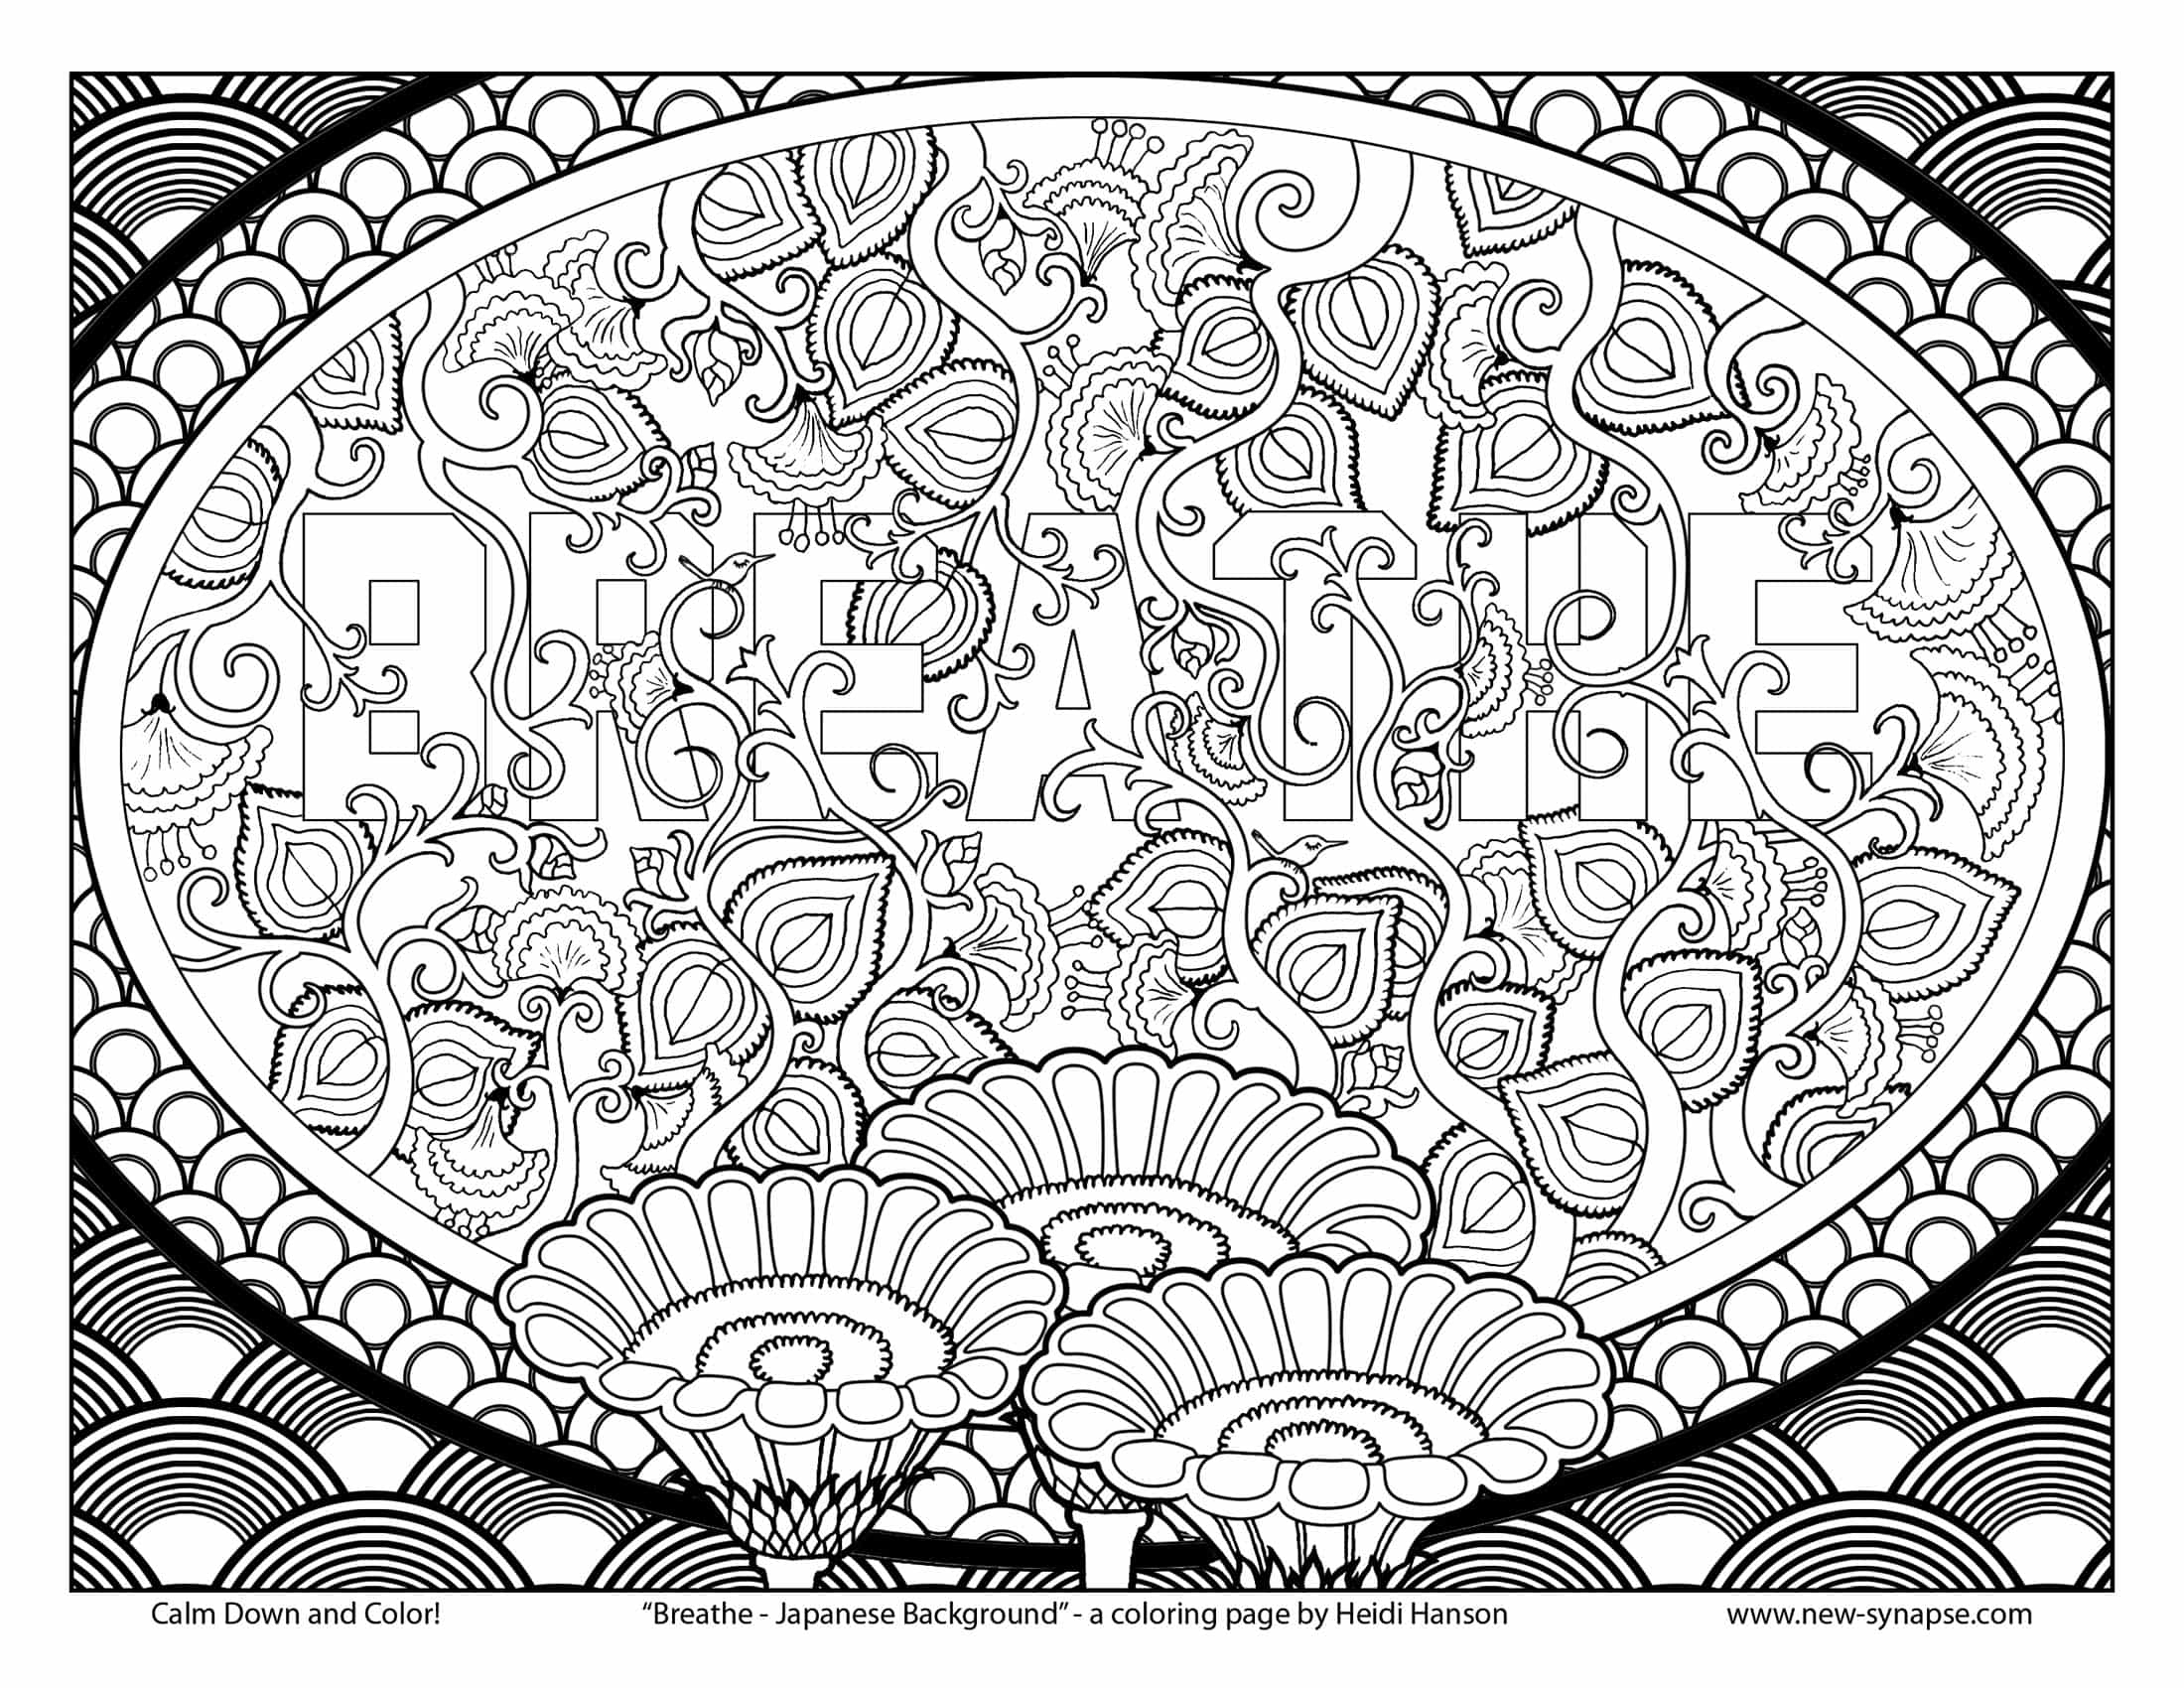 Relaxing Coloring Pages Relaxing Drawing At Getdrawings Free For Personal Use Relaxing